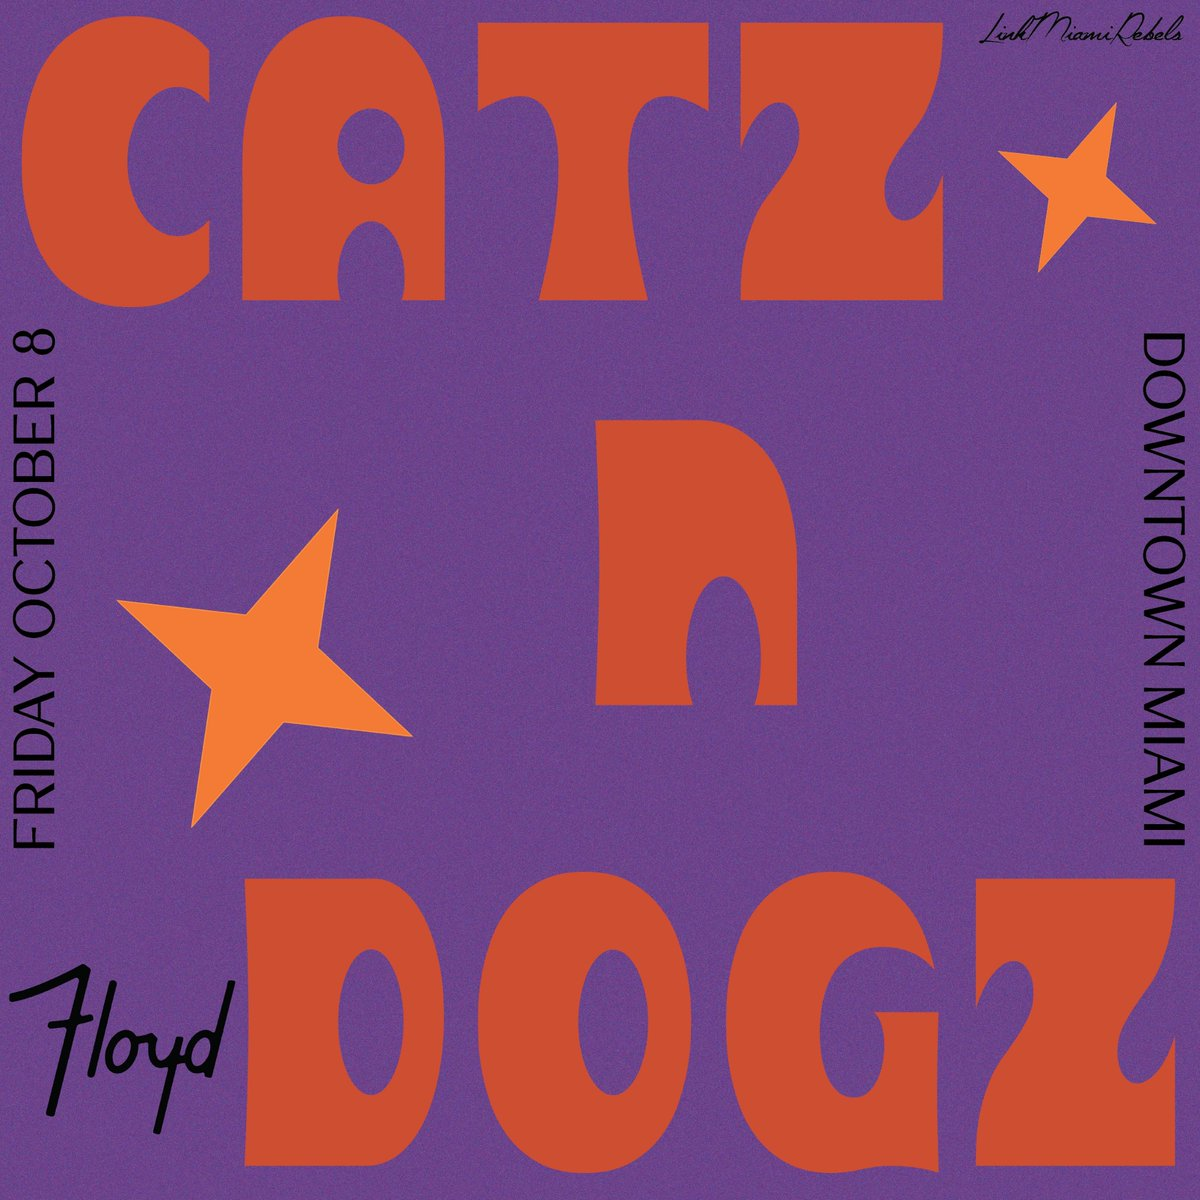 Musically speaking, it's going to be raining @Catz_n_Dogz Friday, October 8th eventbrite.com/e/176645049097